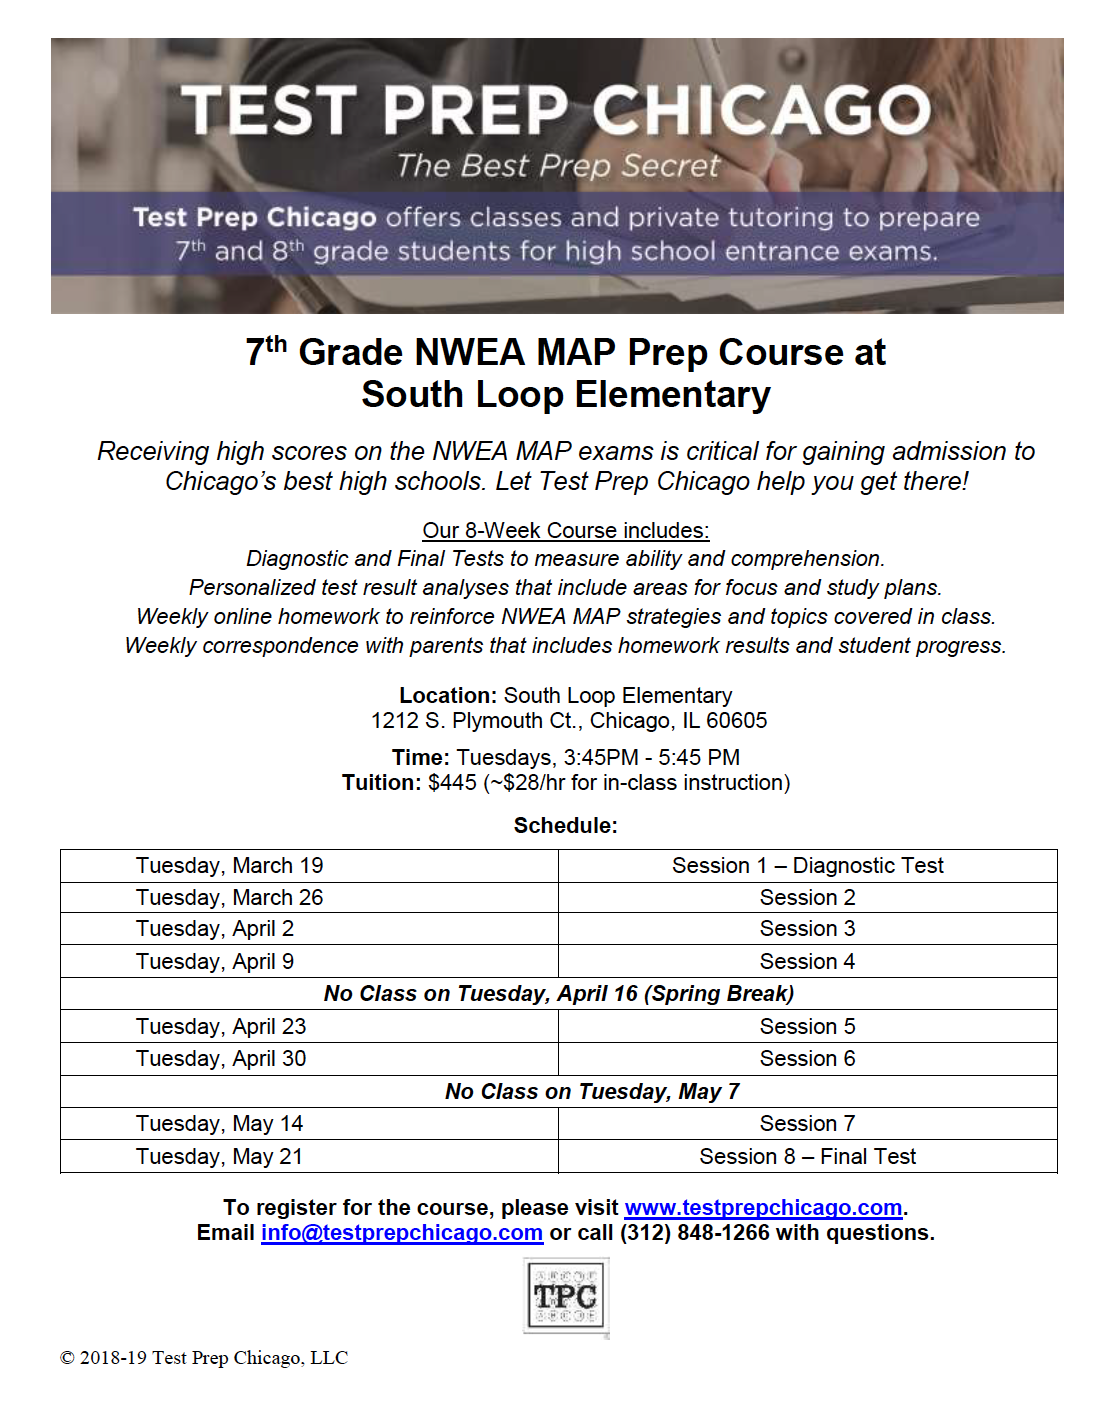 7th Grade NWEA Test Prep Course – This Spring – South Loop